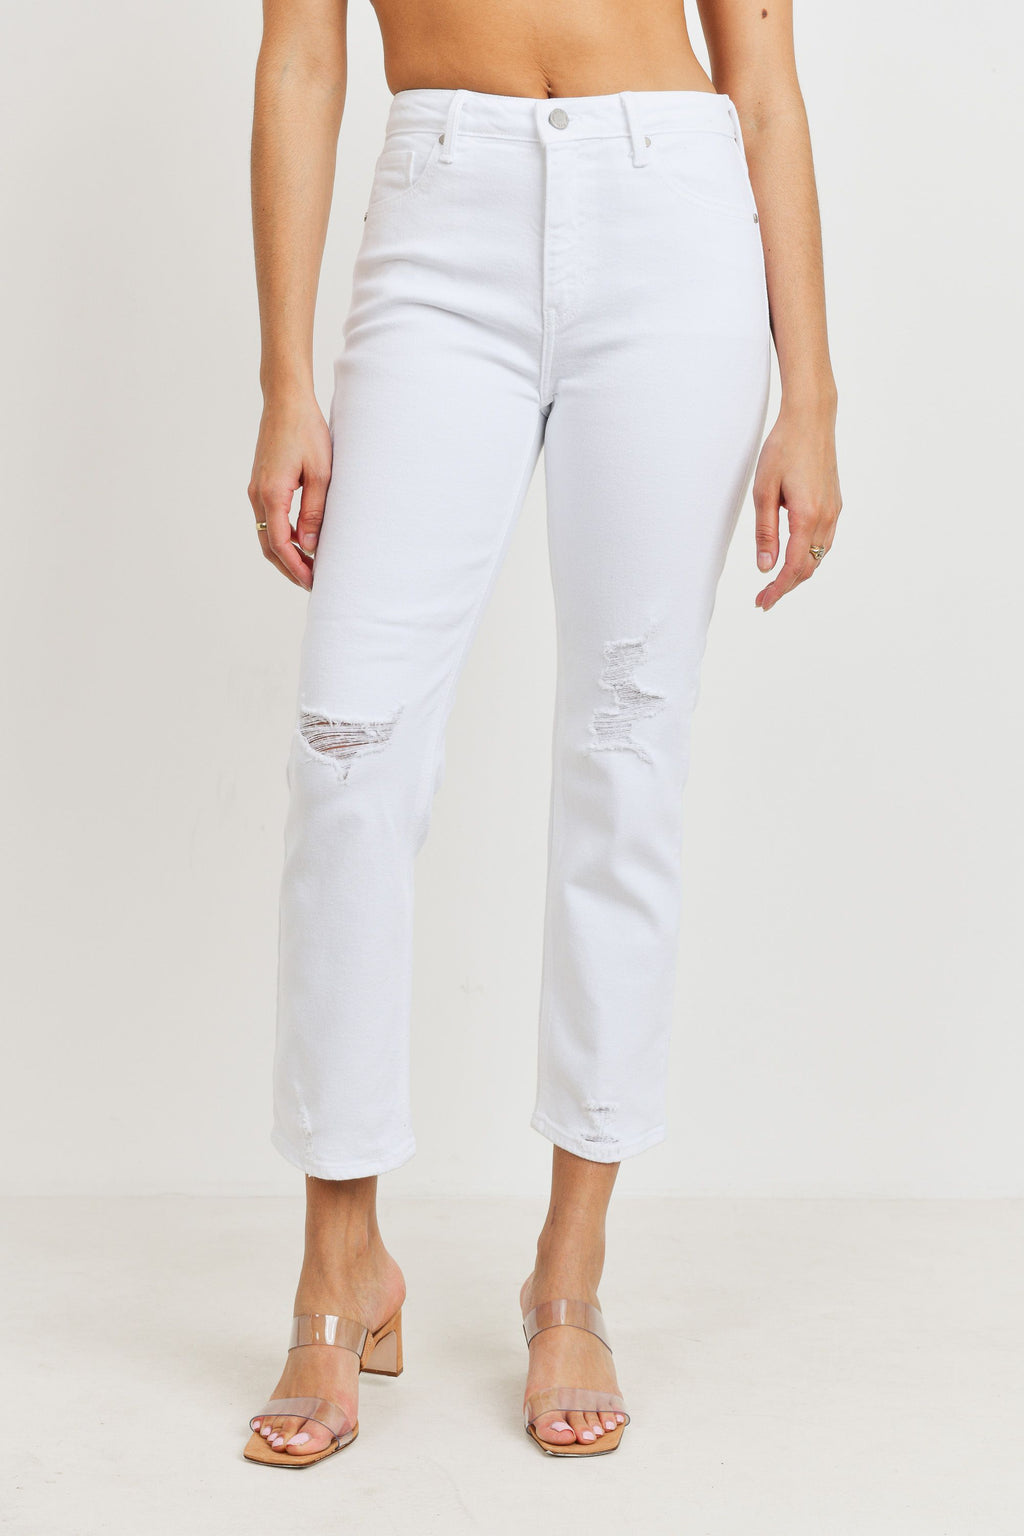 Distressed White Cropped Straight Leg Jeans